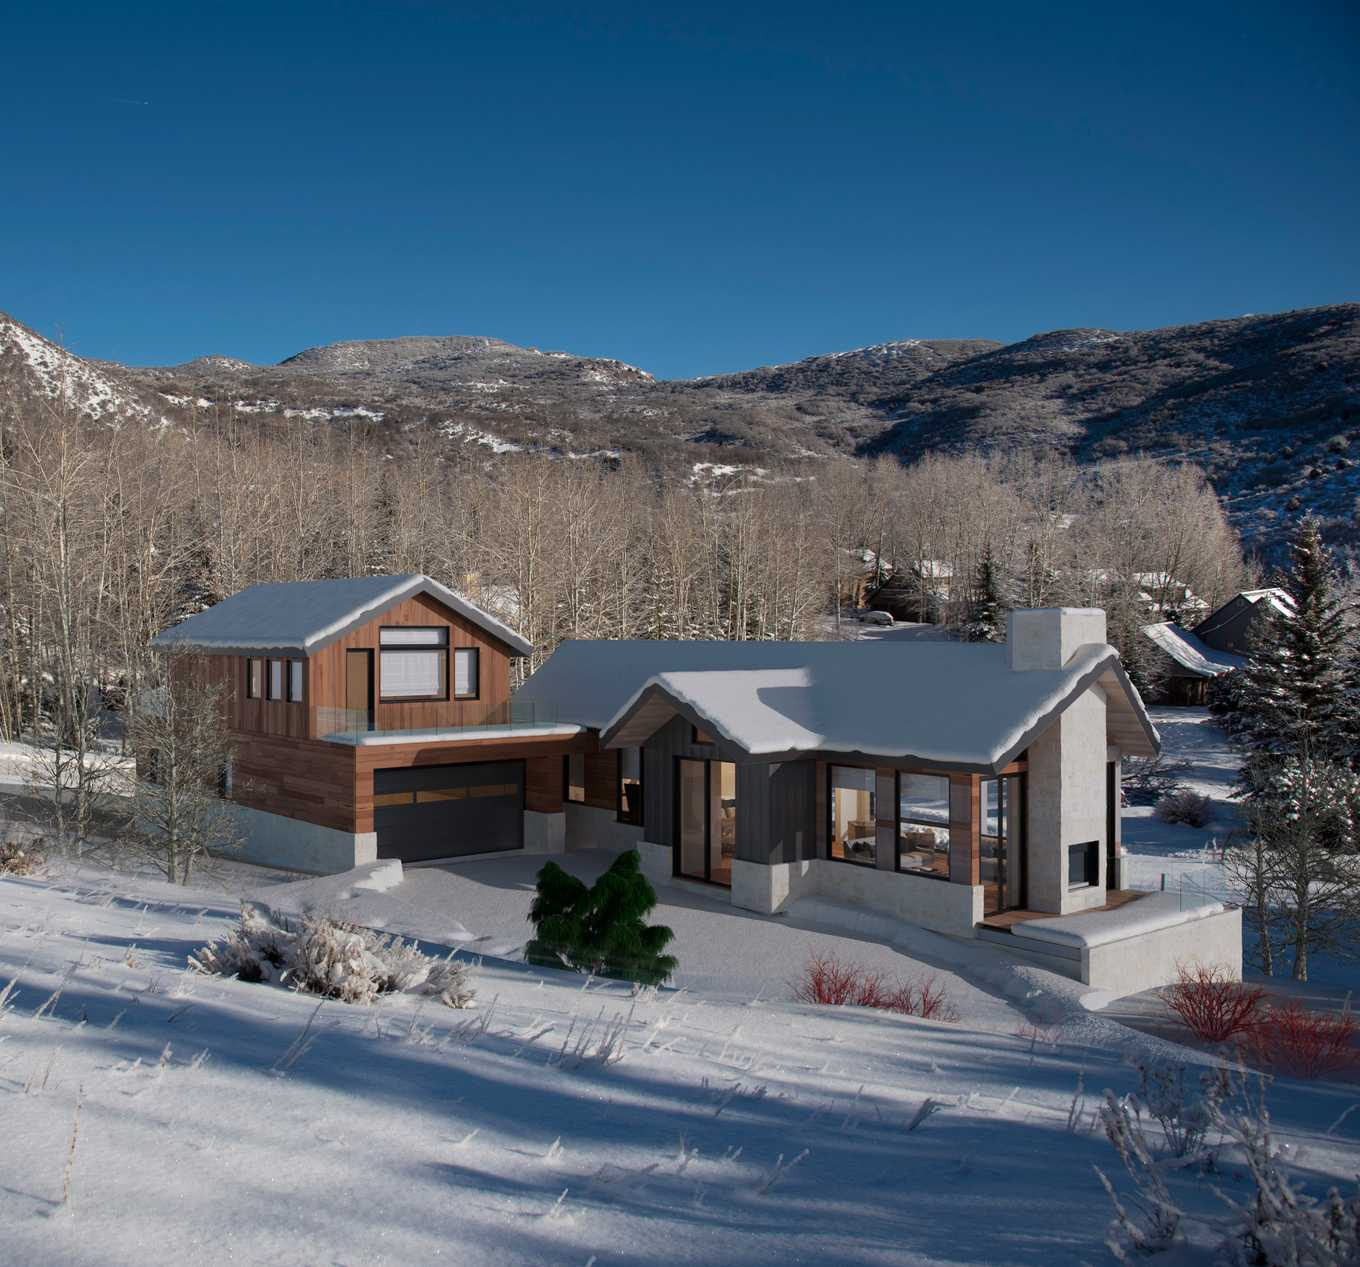 TBD Spur Ridge Road Snowmass Village Photo 1